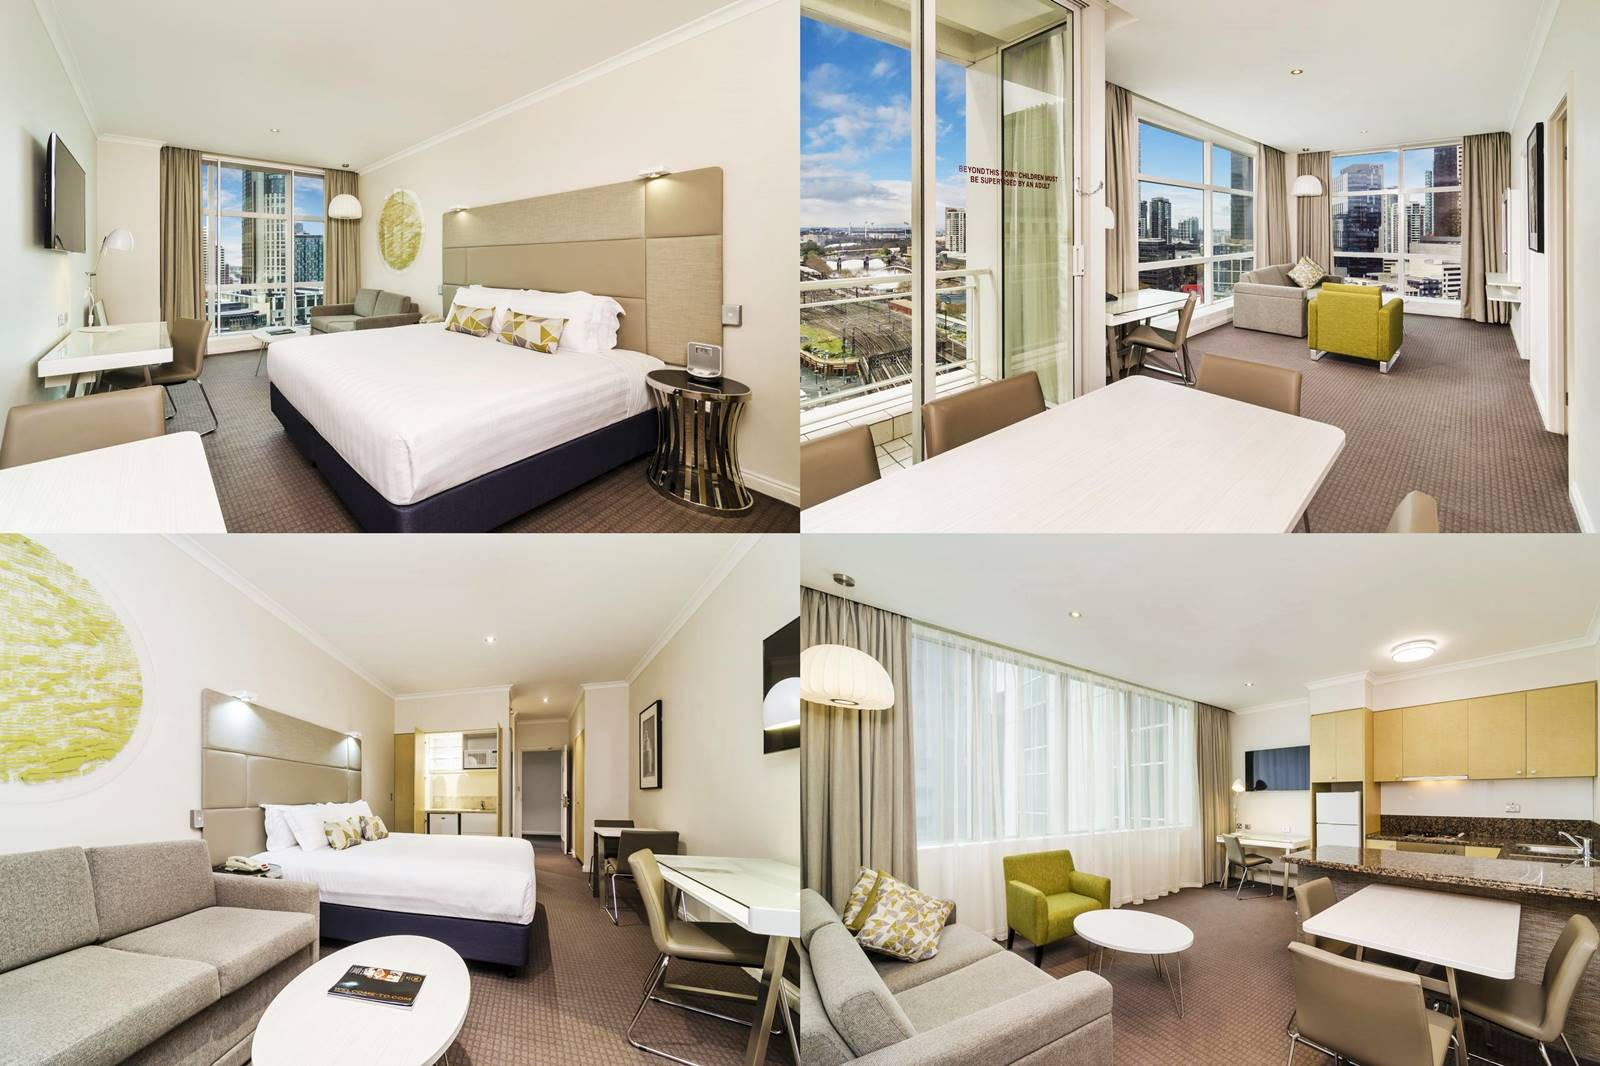 Melbourne-Accommodation-Recommendation-Hotel-Apartment-Bed and Breakfast-Hostel-Clarion Suites Gateway